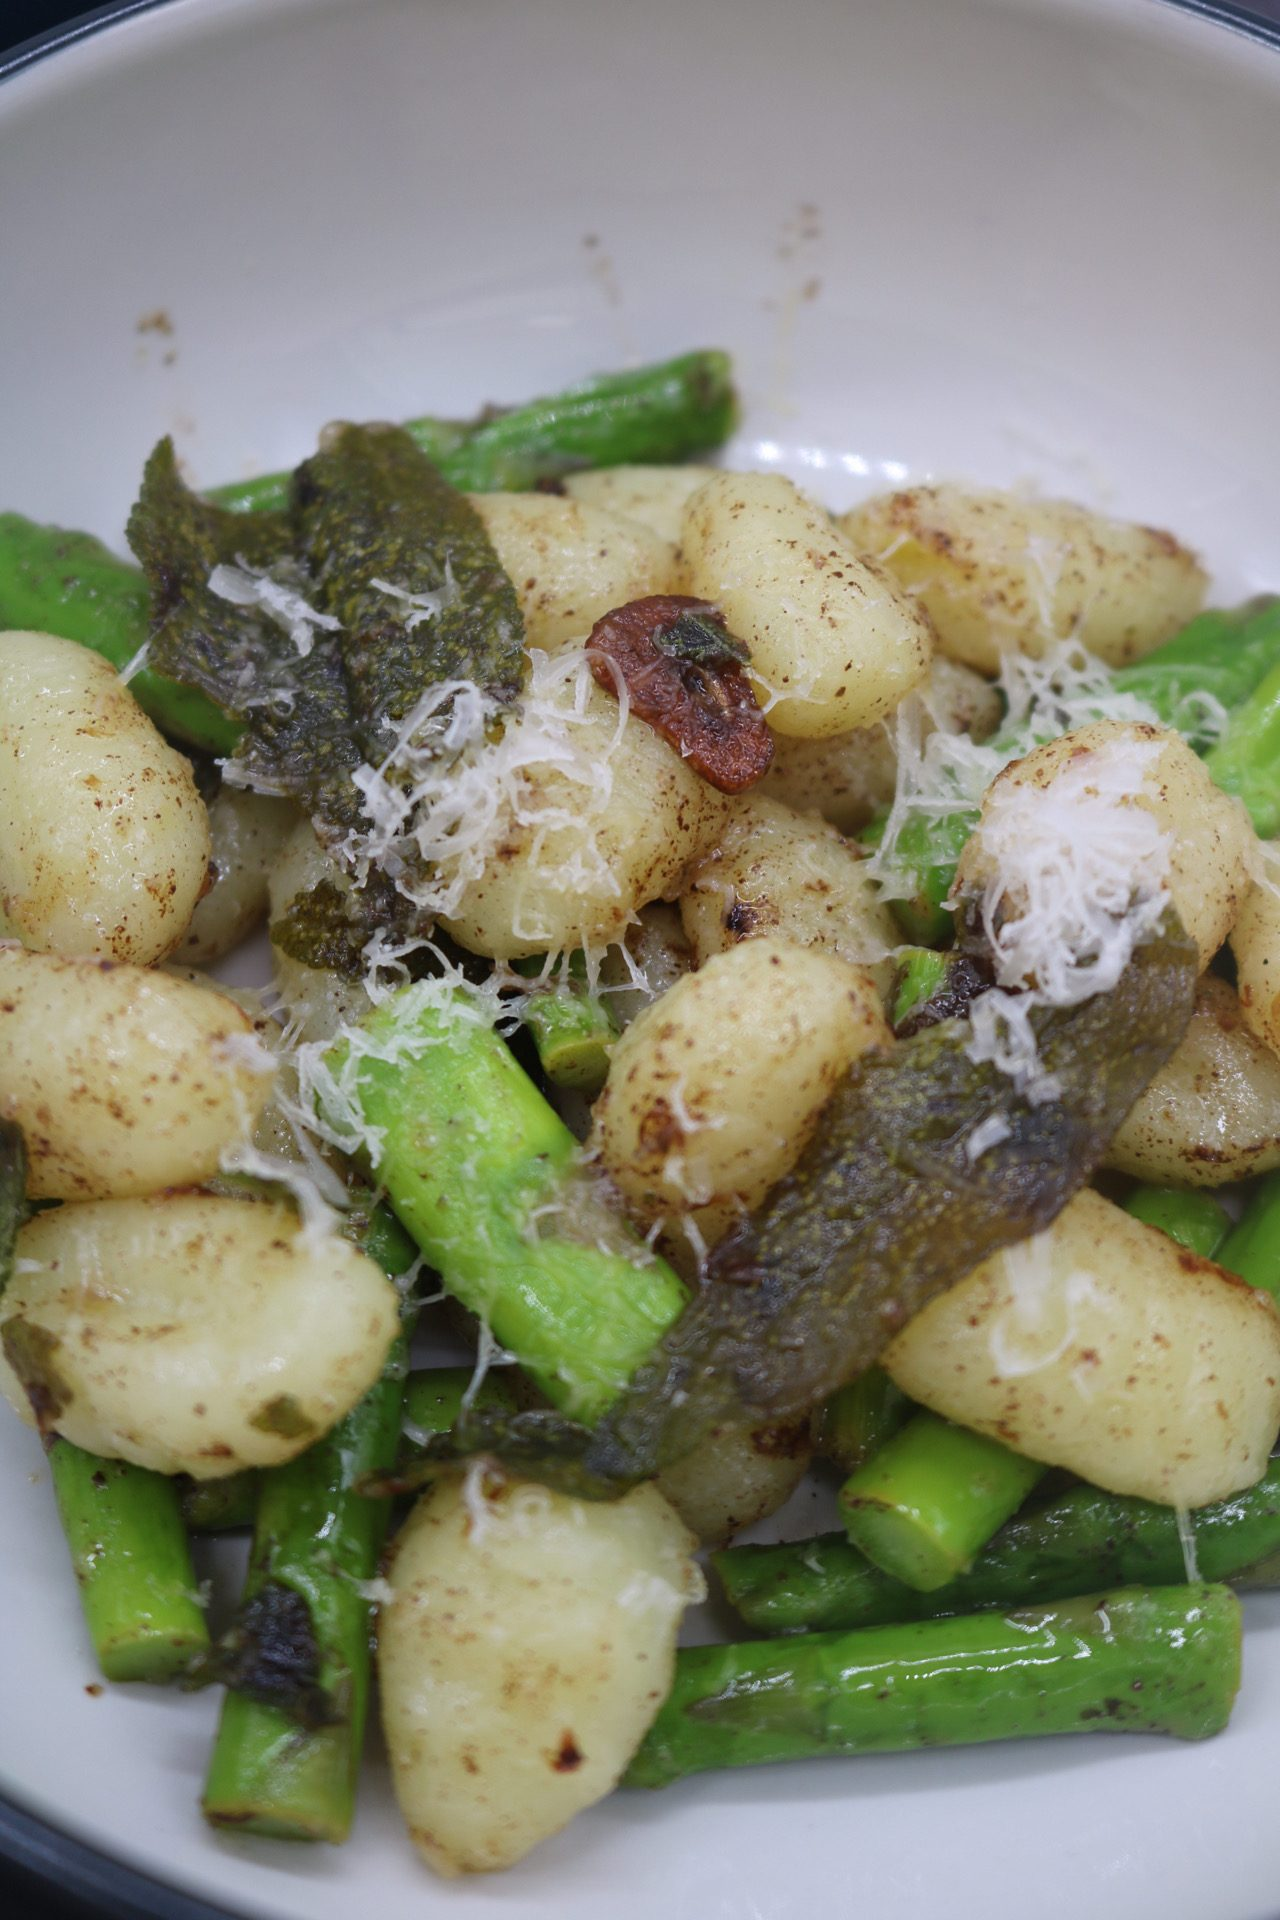 Gnocchi and Asparagus with Sage and Lemon Butter, Gnocchi and Asparagus with Sage and Lemon Butter